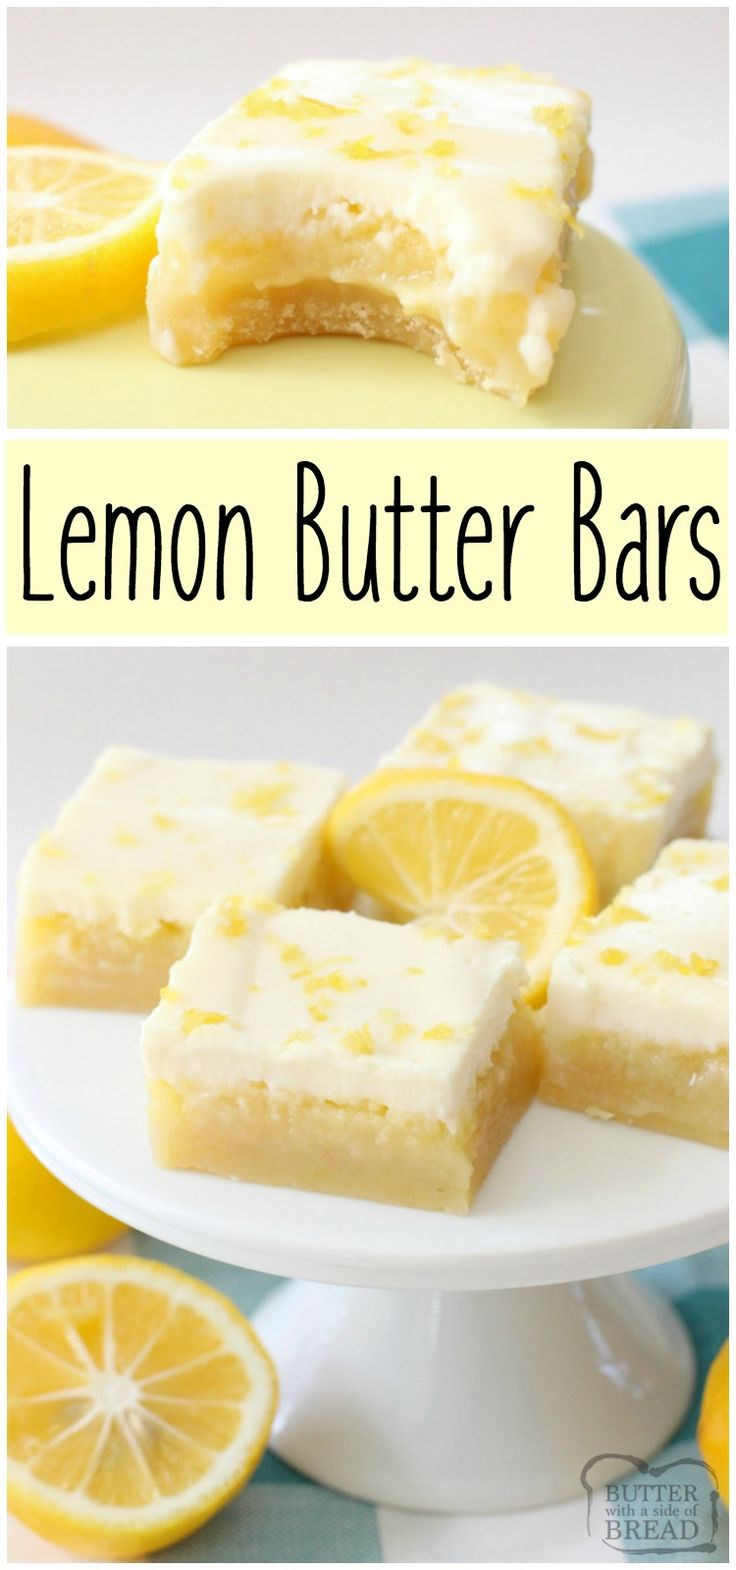 Triple layer Lemon Bars with a bright, buttery flavor! Easy to make lemon dessert that everyone enjoys! Dessert recipe from Butter With A Side of Bread via @ButterGirls